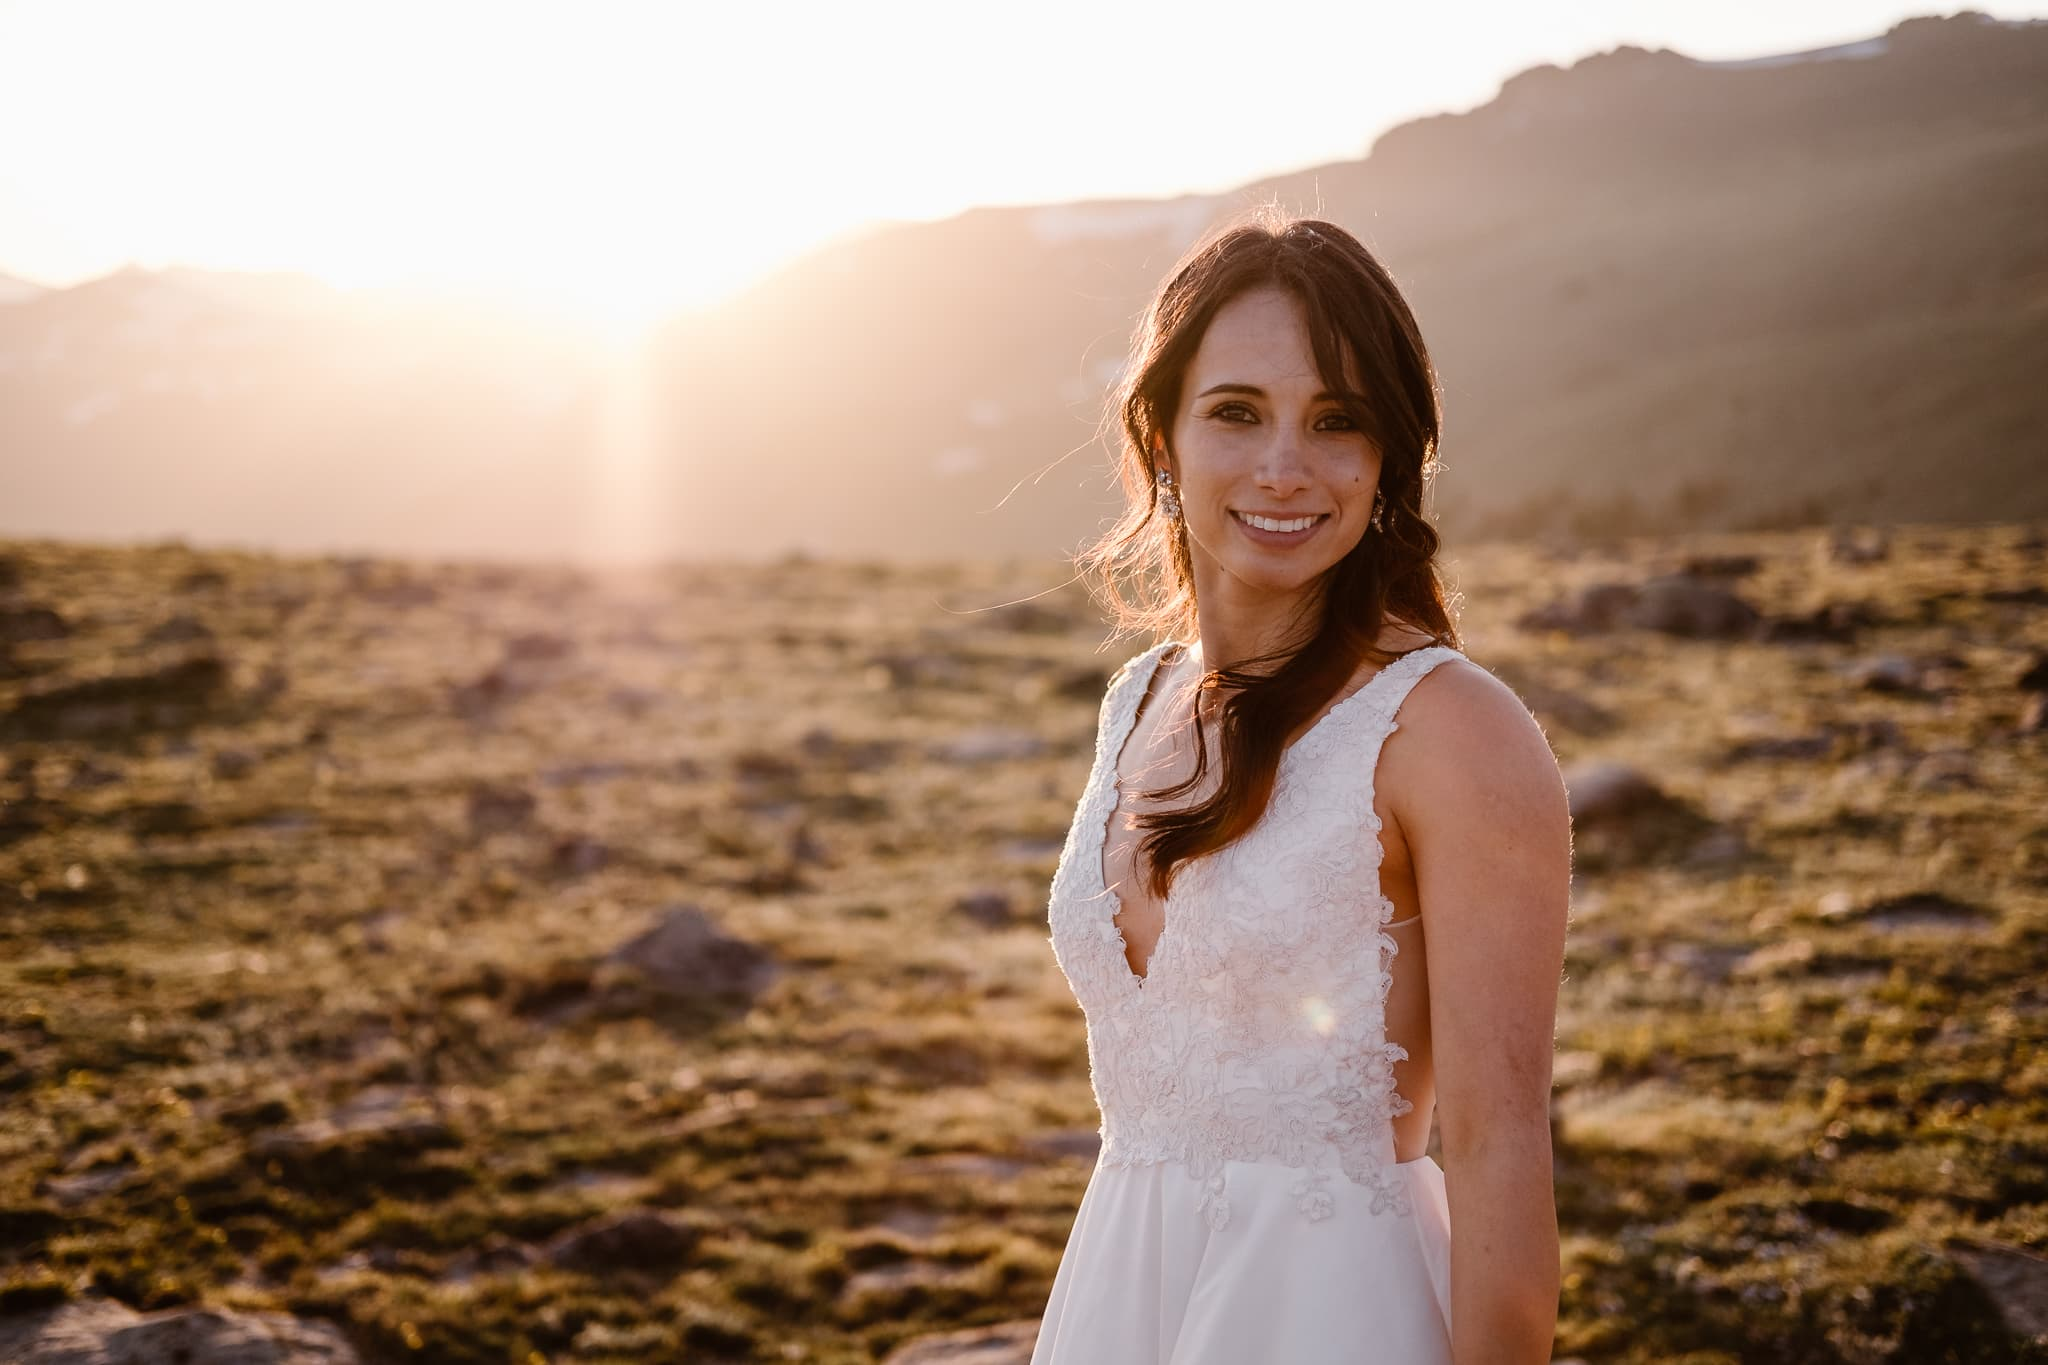 Trail Ridge Road Elopement Photographer, Colorado adventure wedding photography, mountain hiking elopement, bride at sunset